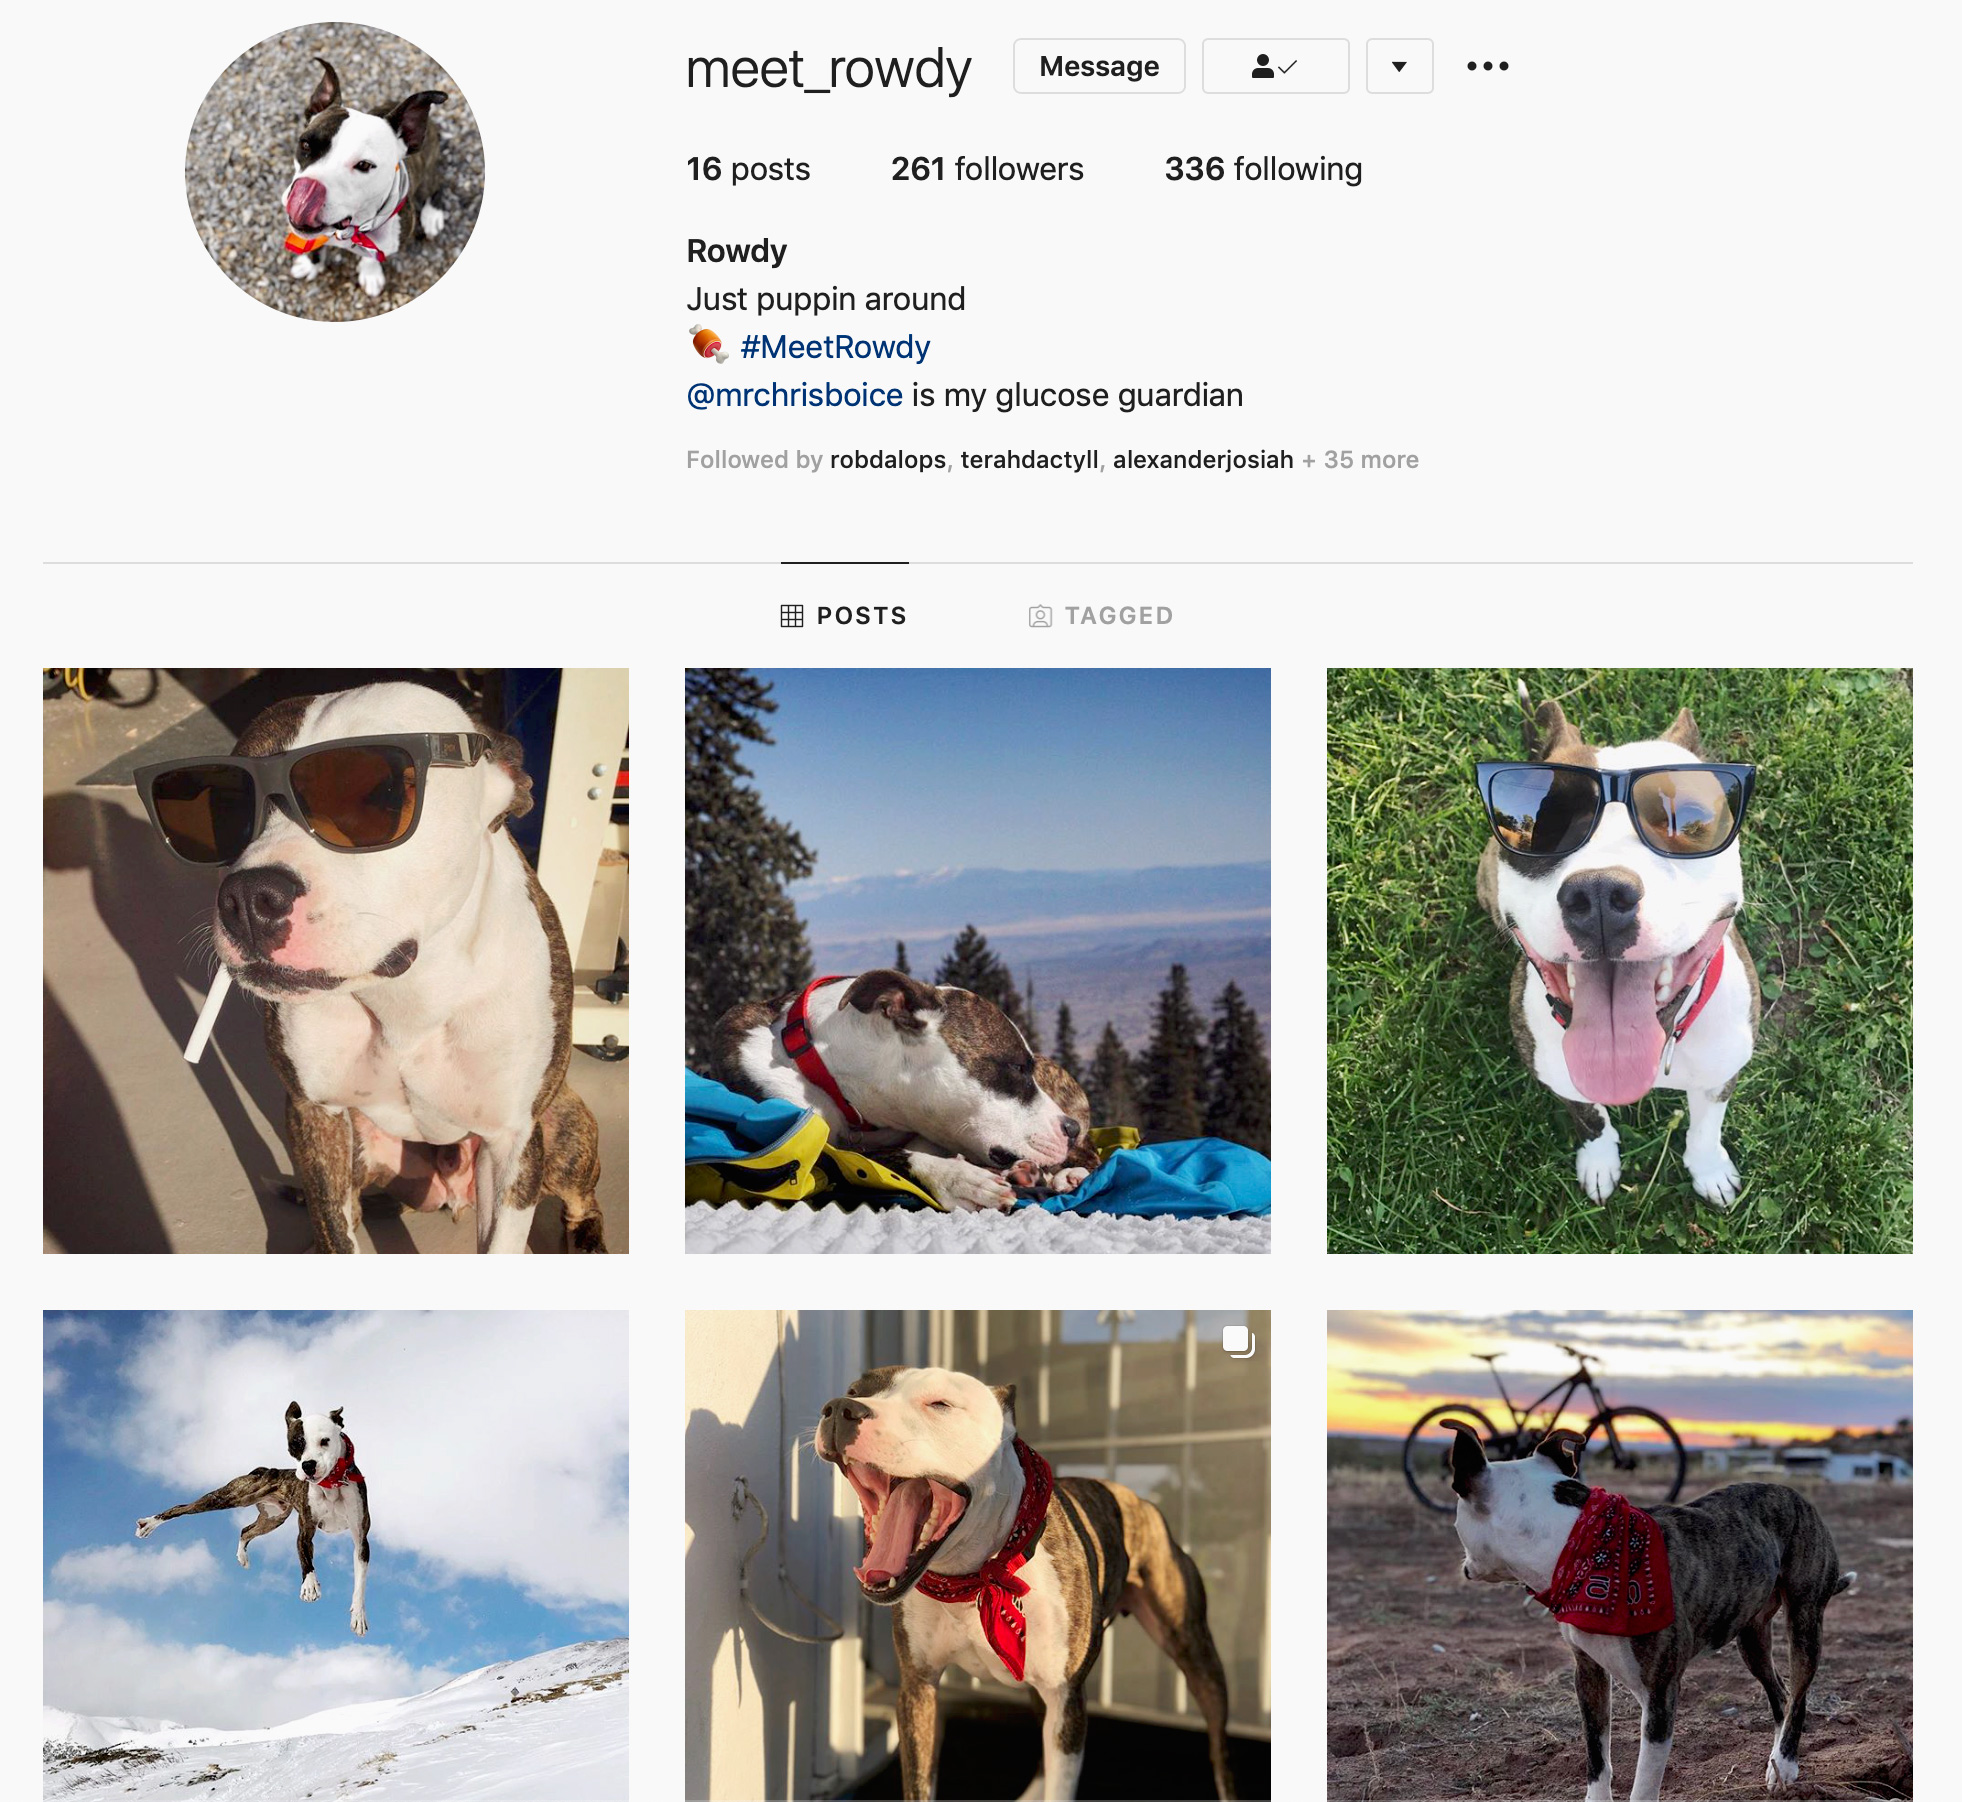 rowdy dog from Rally Van posting up with his Instagram page. Vanlife